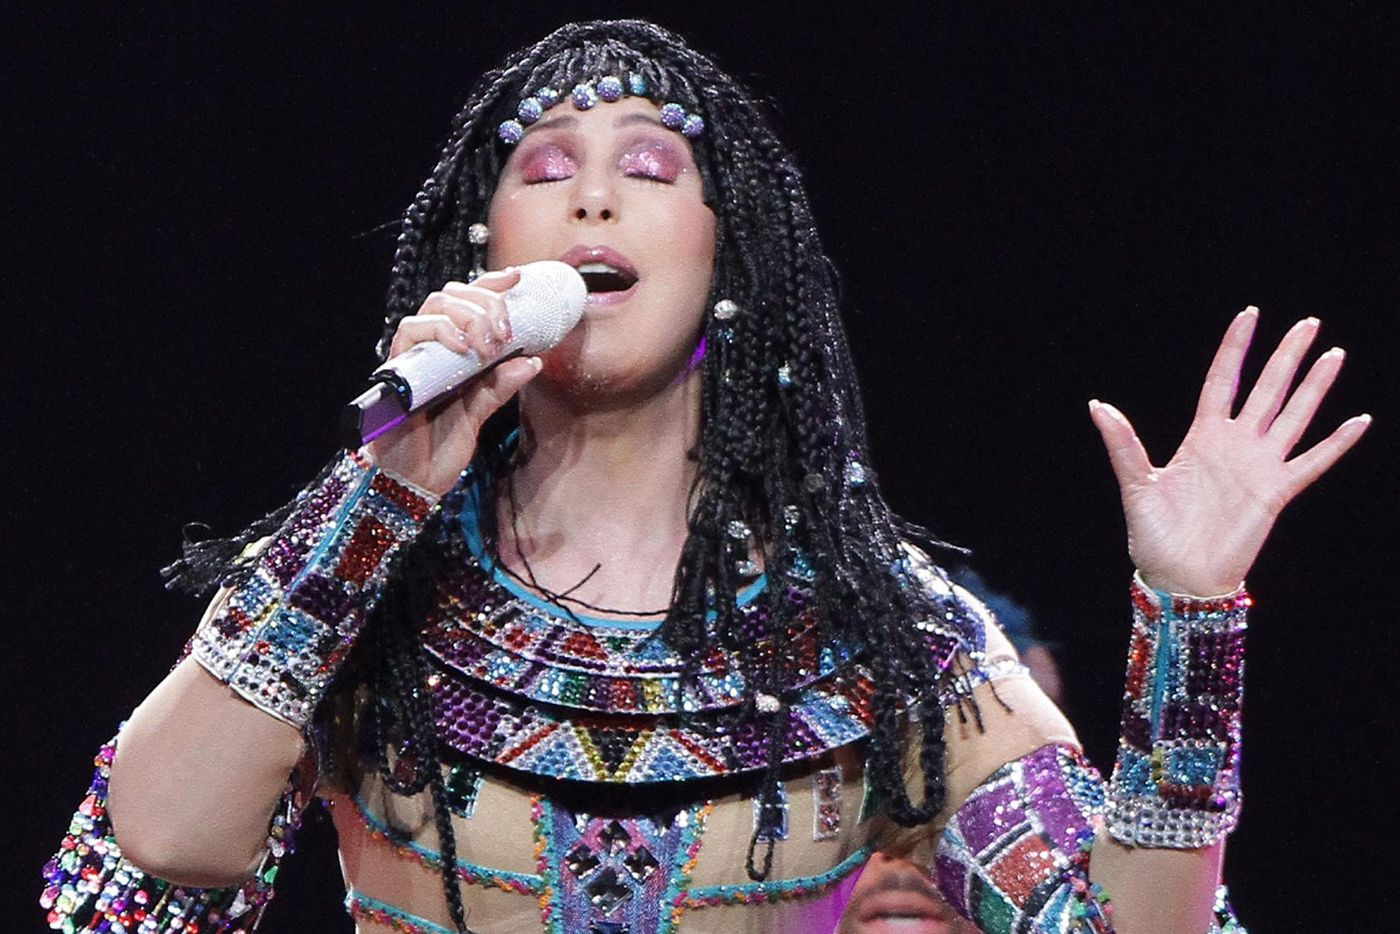 Cher stuns at the Borgata in first of two shows